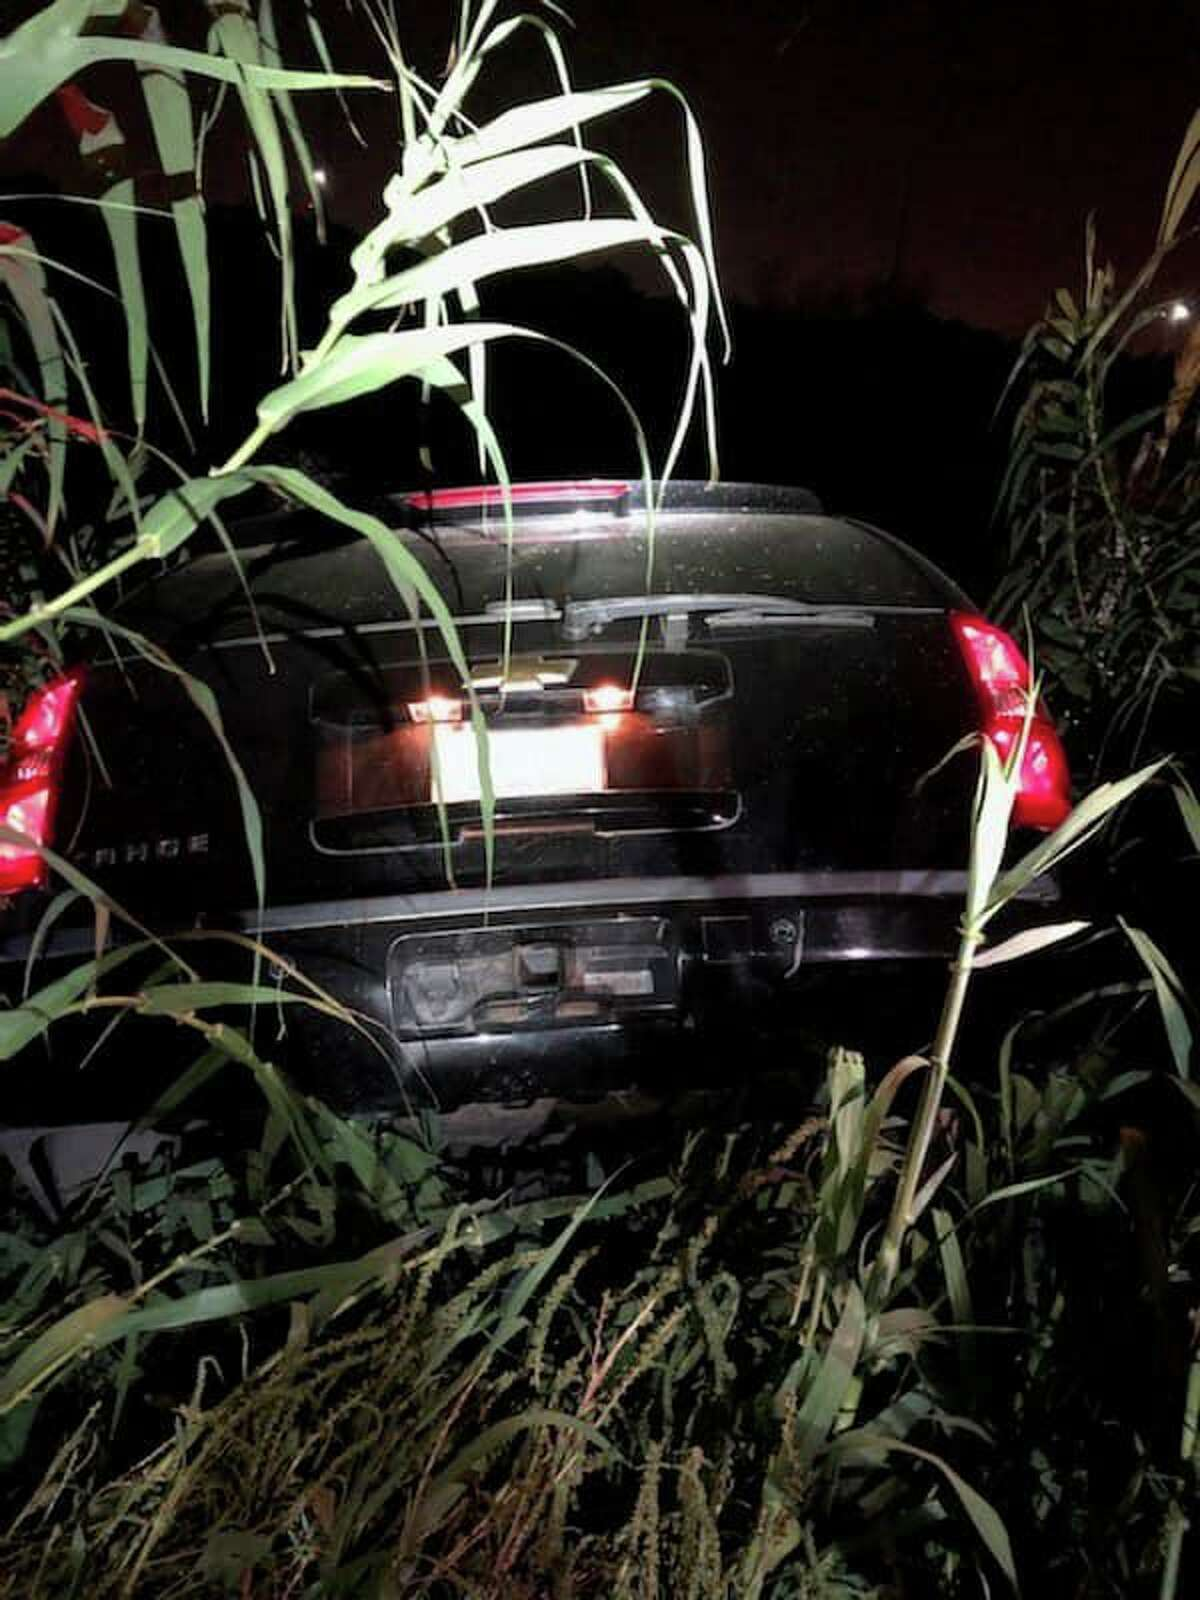 The U.S. Border Patrol reported that a suspected attempted human smuggling attempt ended in a vehicle driving into the Rio Grande on July 28.